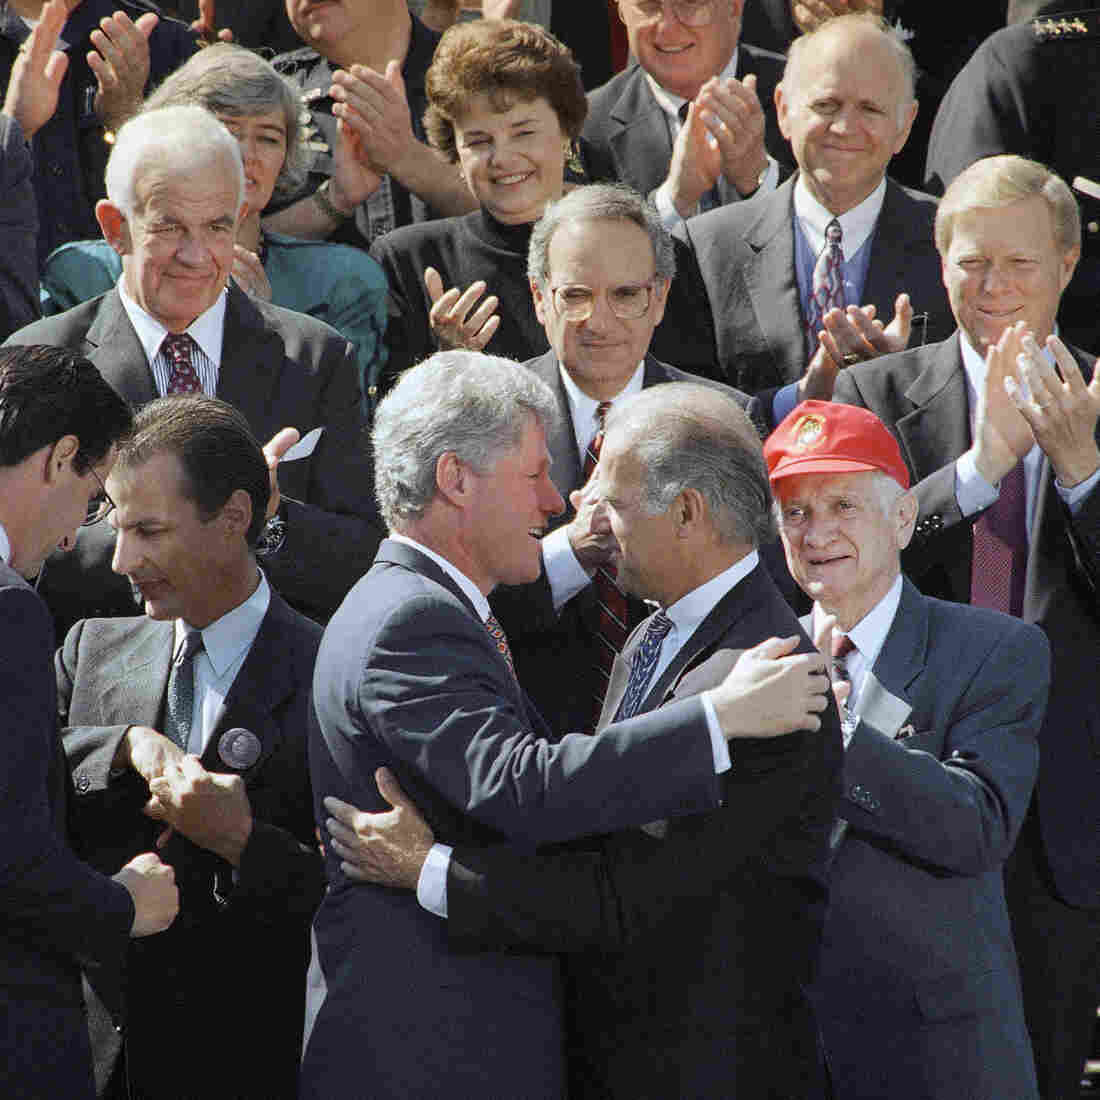 Surrounded by lawmakers, President Bill Clinton hugs then-Sen. Joseph Biden after signing the $30 billion crime bill at the White House on Sept. 13, 1994.